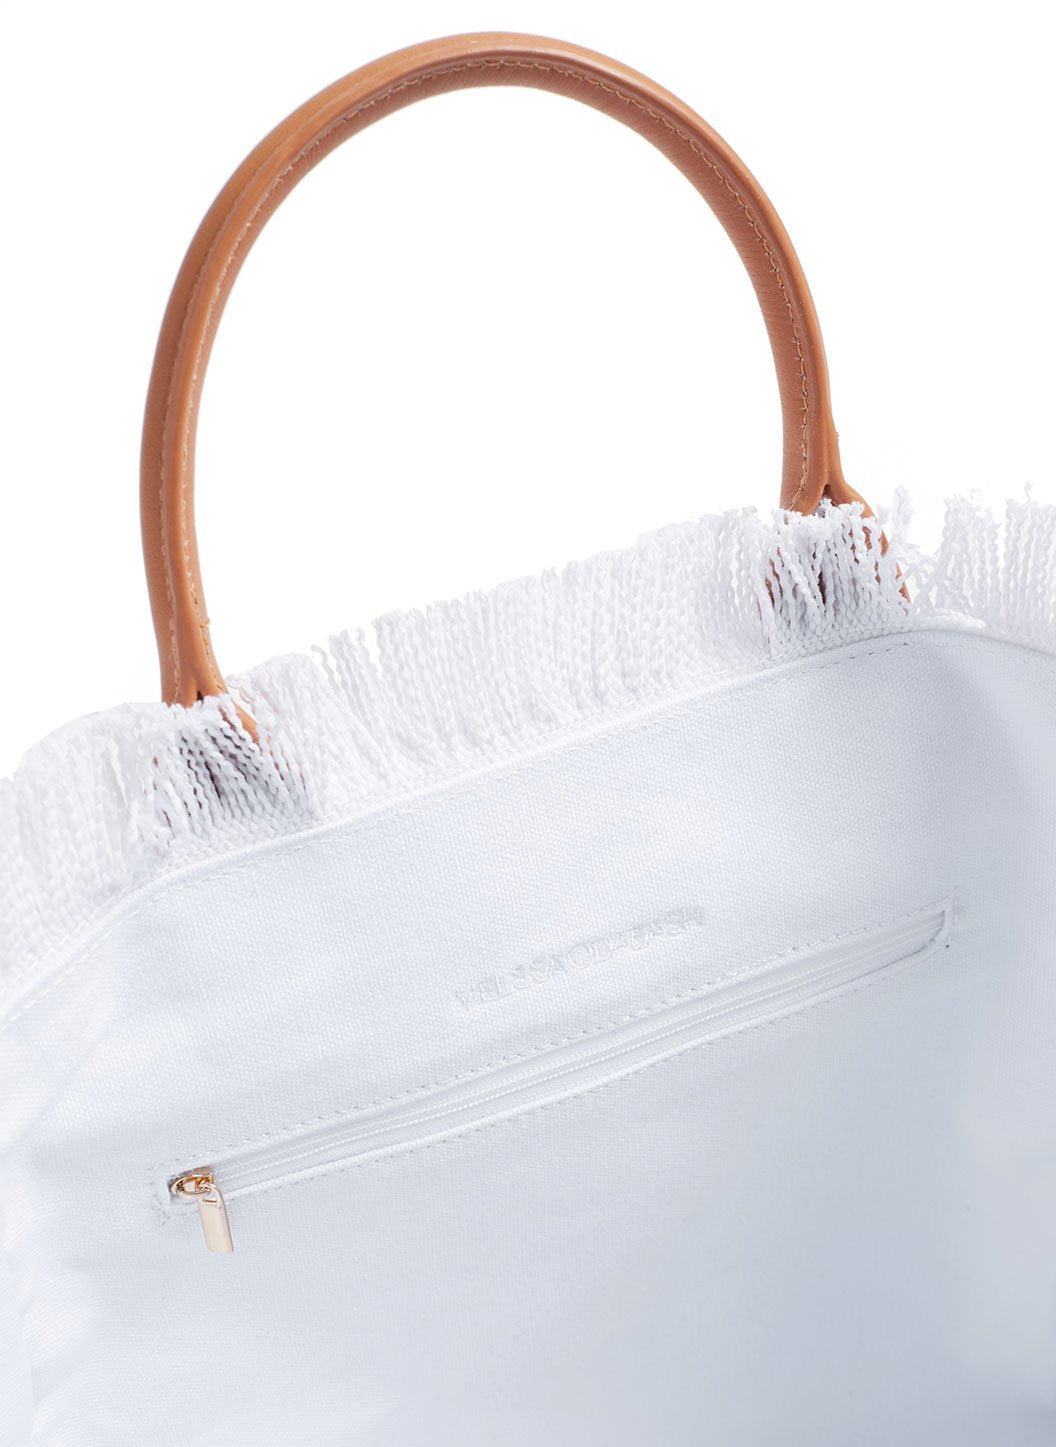 porto cervo mini beach tote white 3 2018